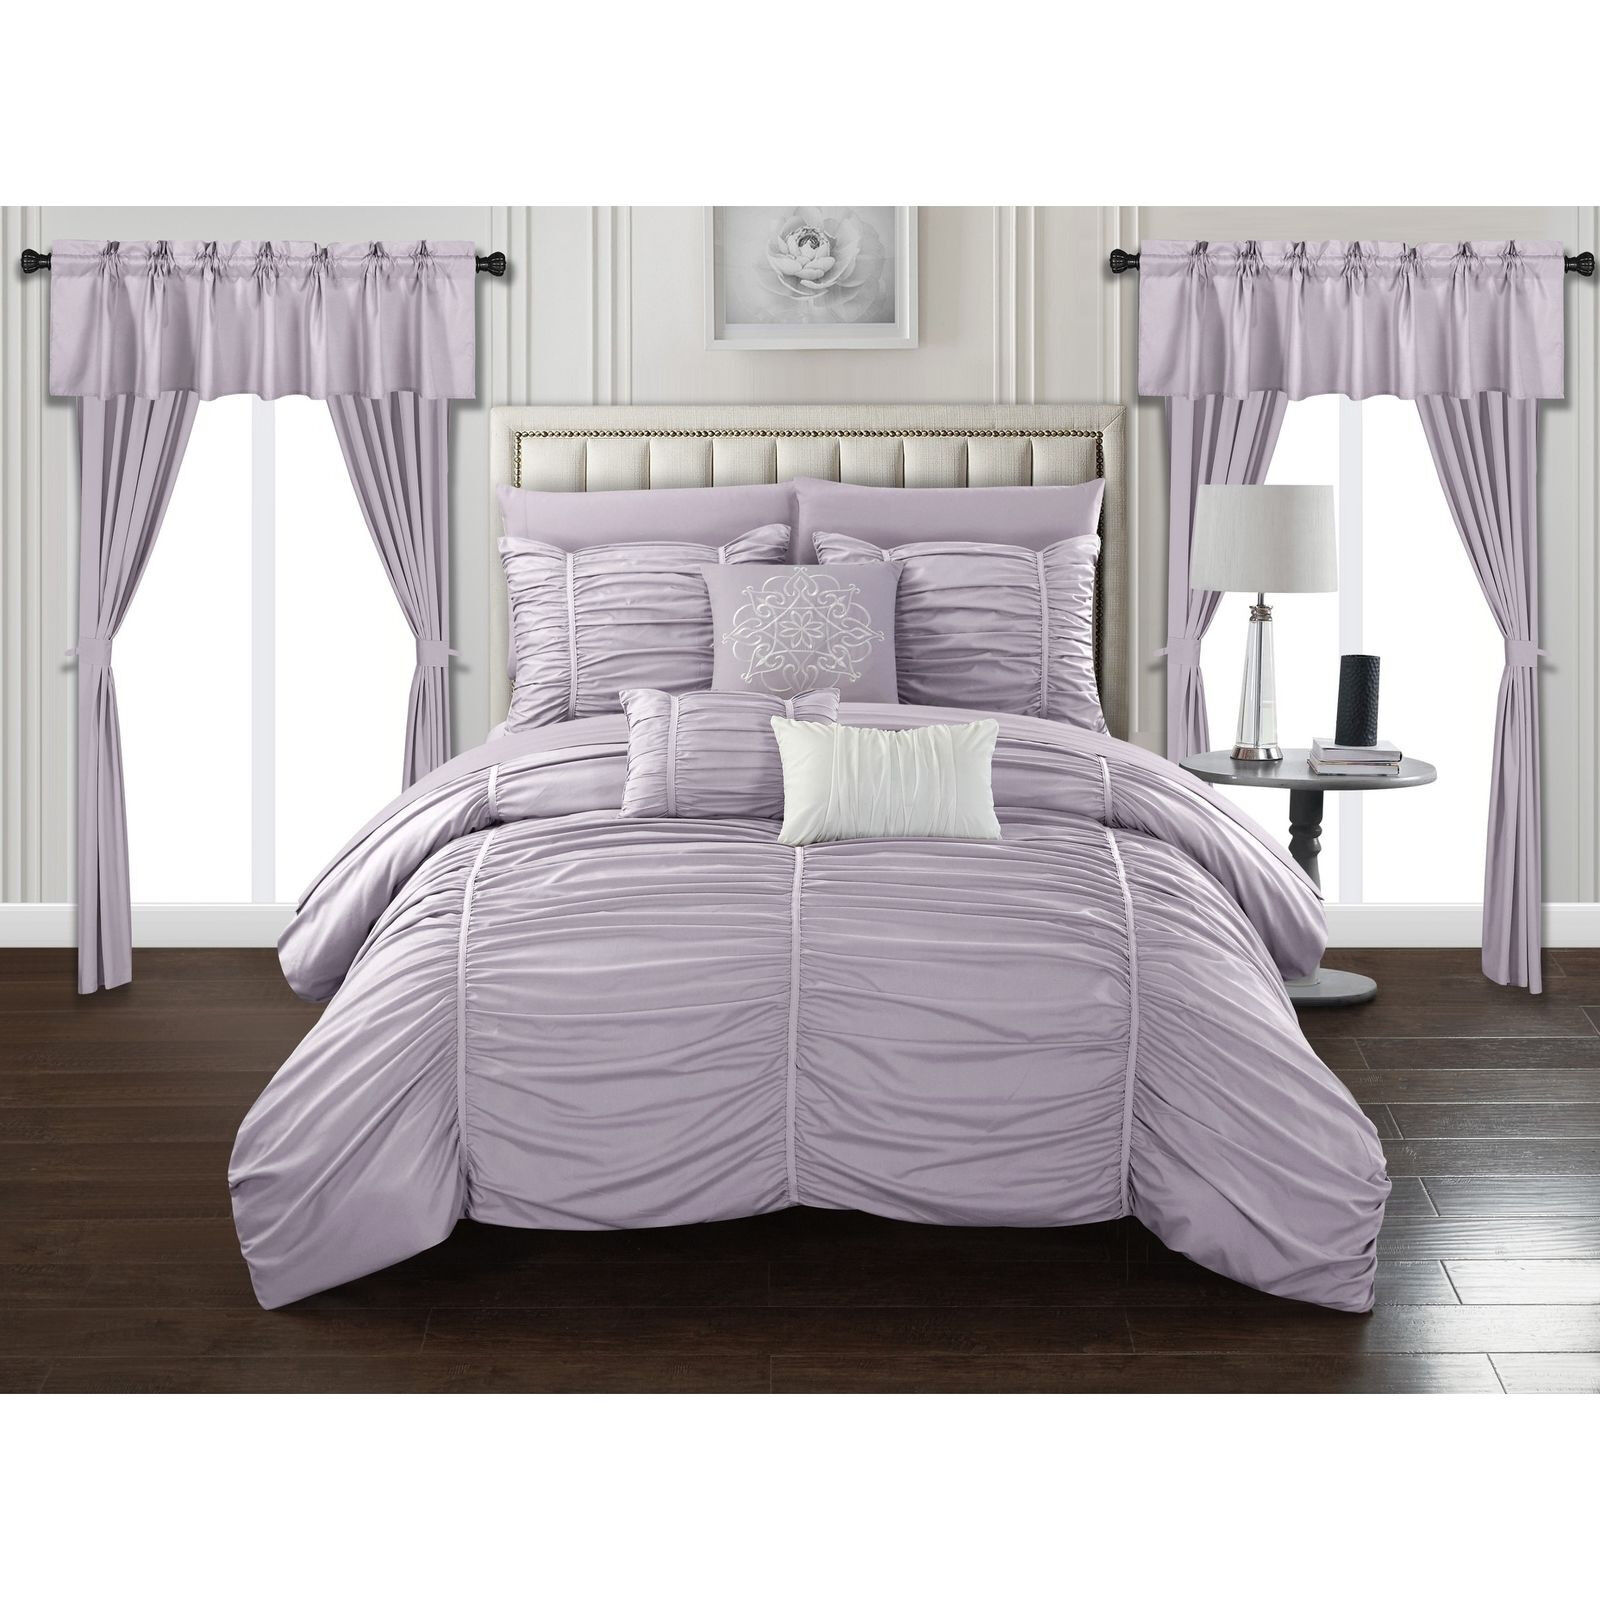 Deluxe Silky lila Ruched Striped Comforter 20 pcs King Queen Set